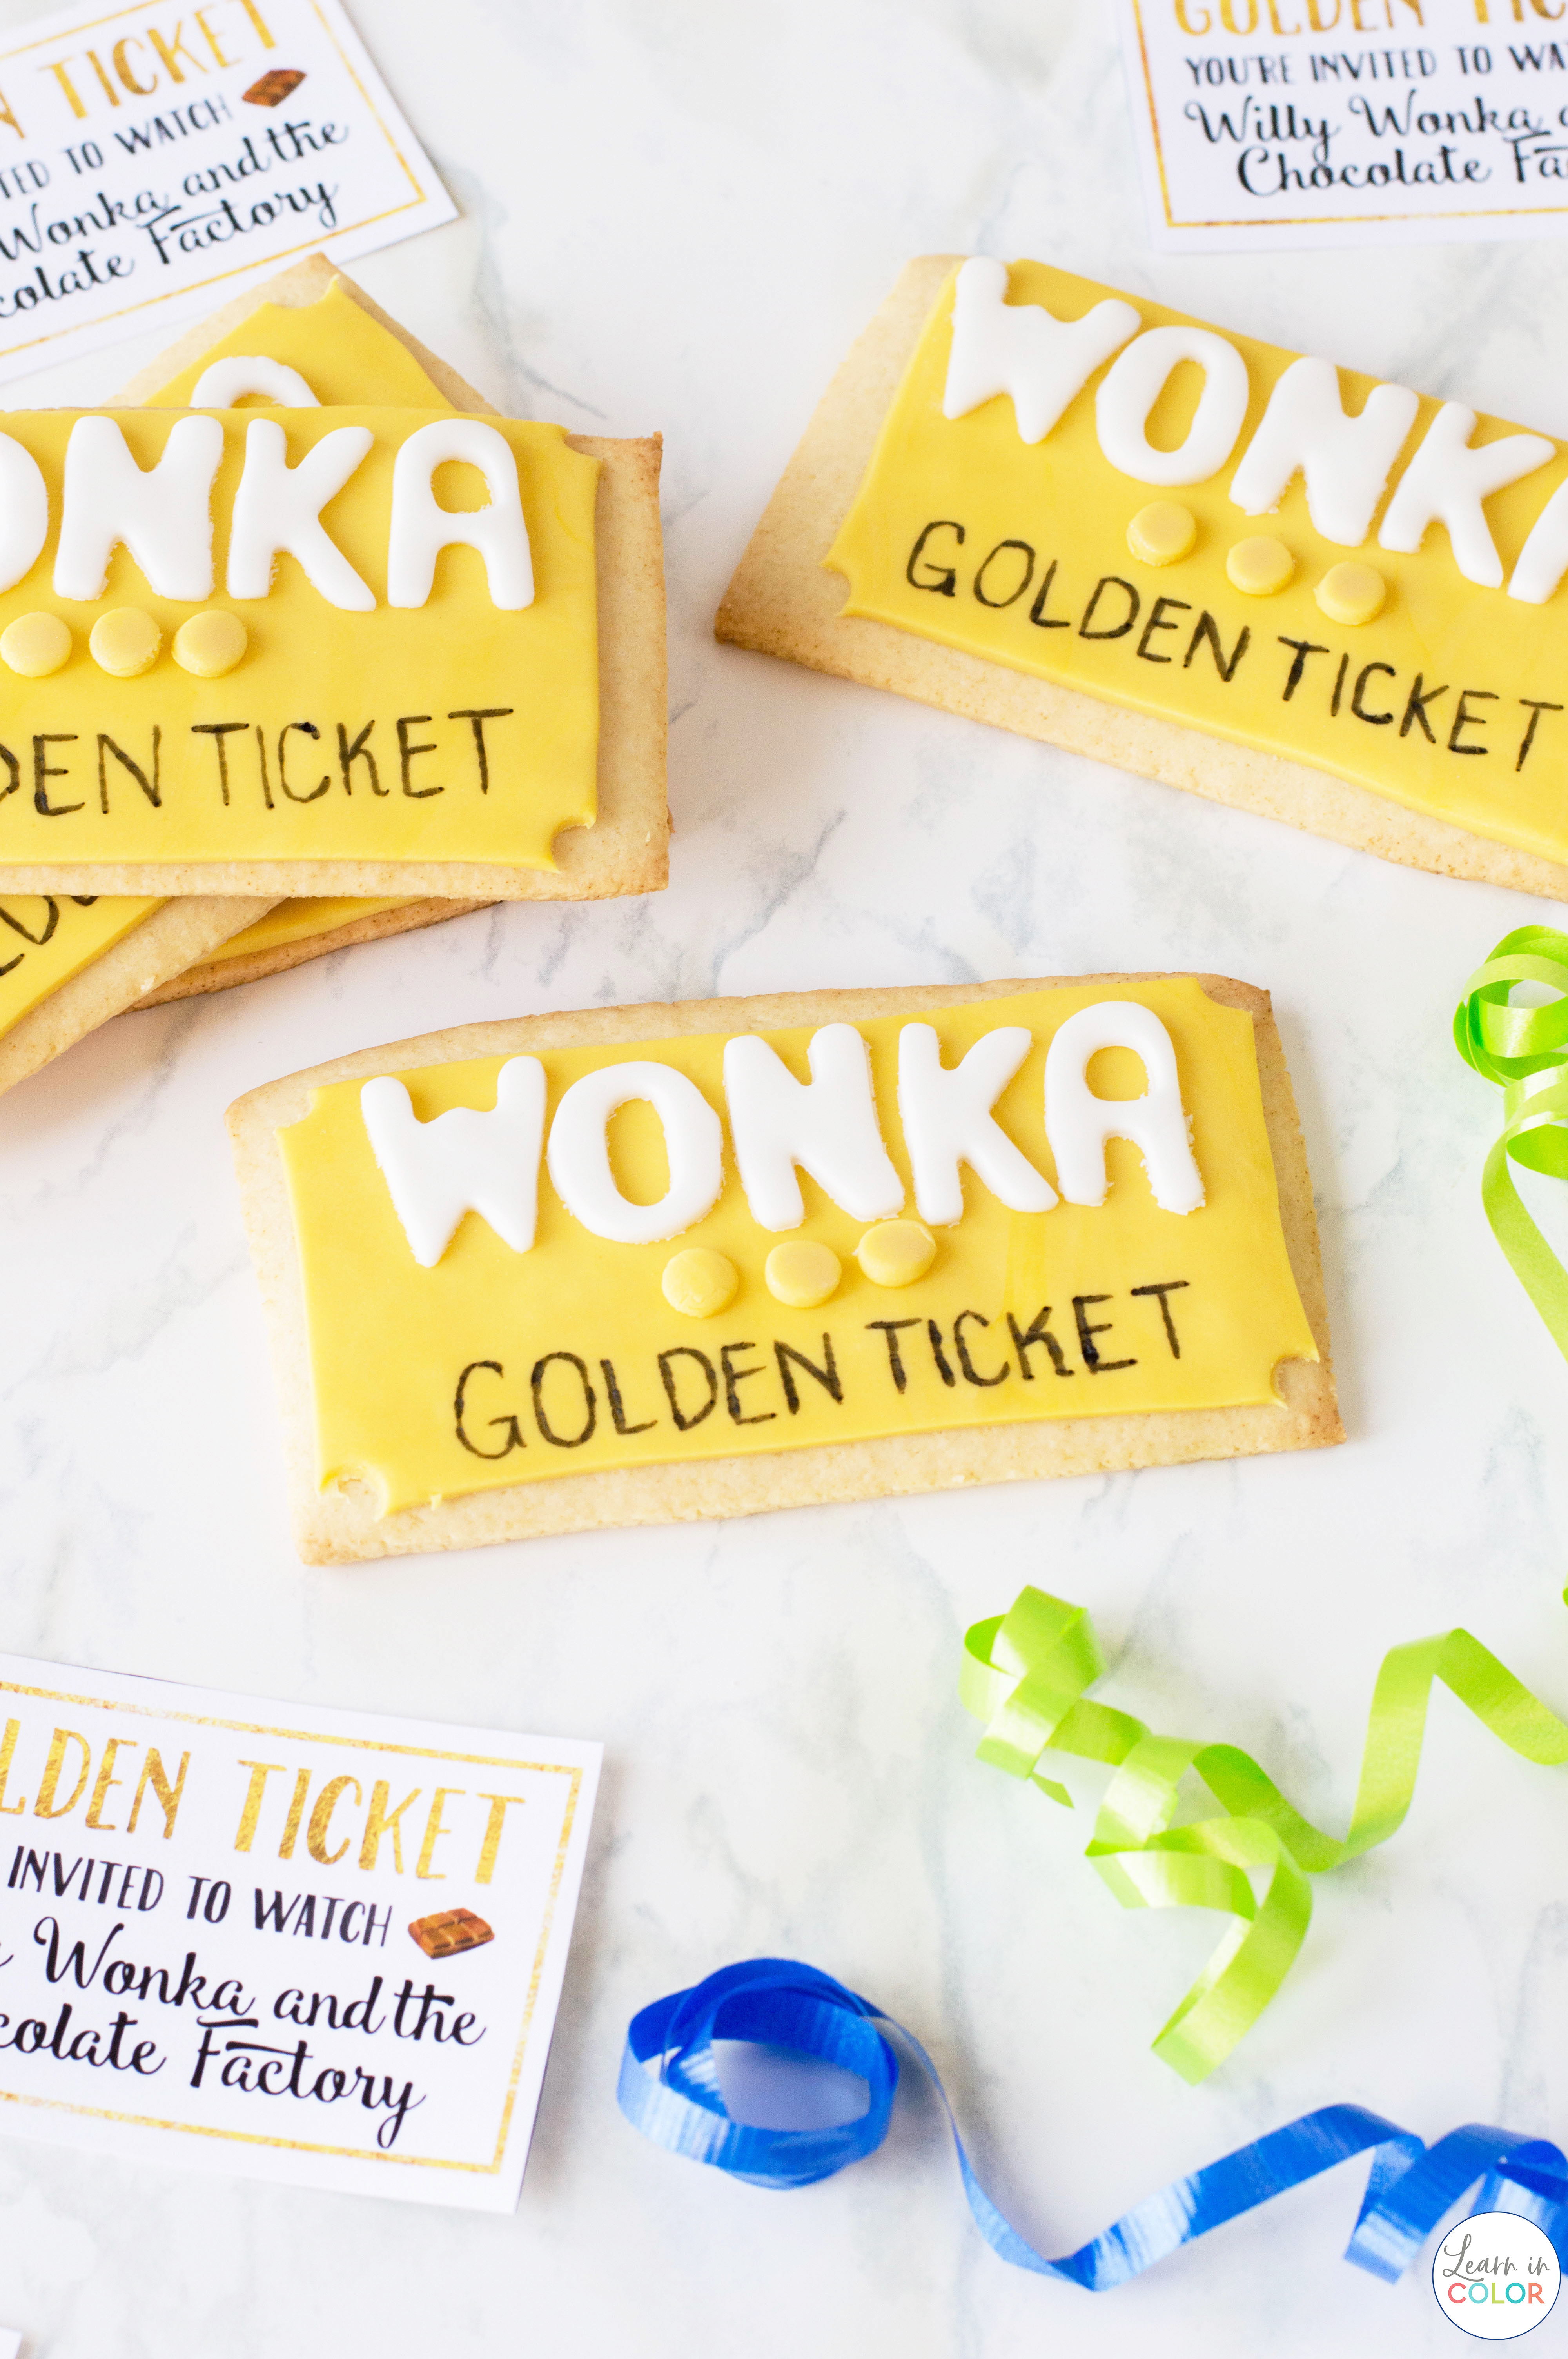 Willy Wonka and the Chocolate Factory is one of my favorite family movies. Enjoy these delicious cookies to go with the movie!